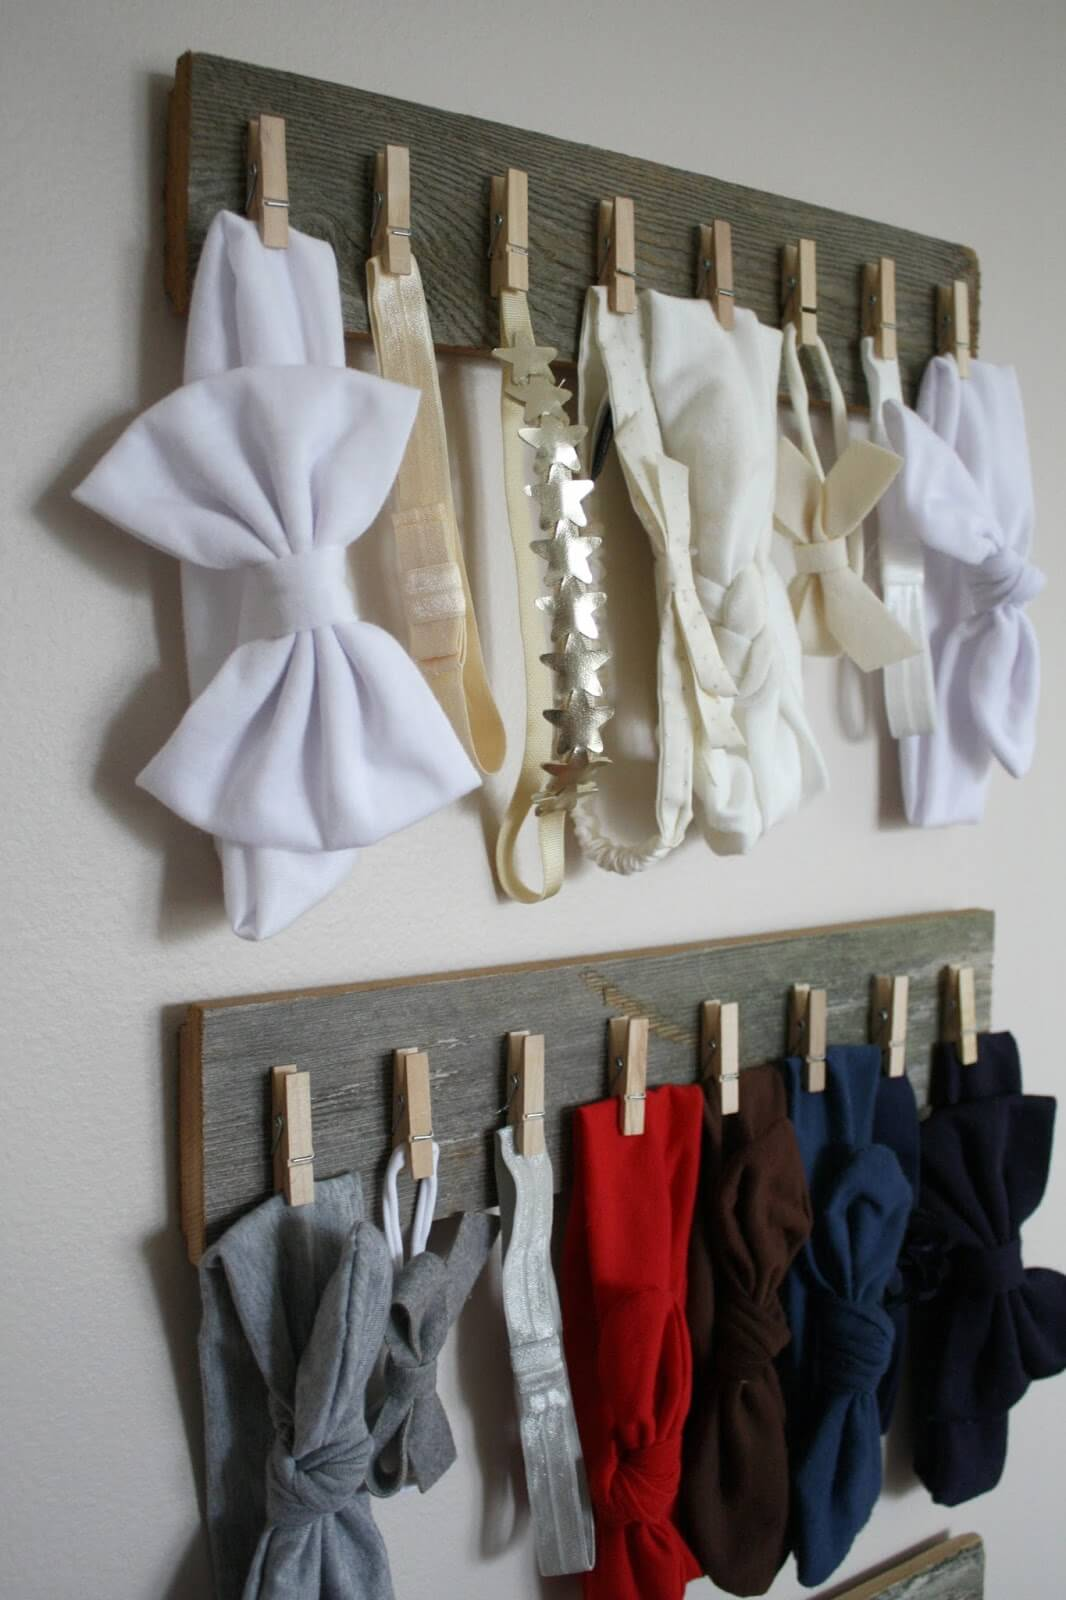 Wood and Clothes Pins Becomes Accessory Organizer